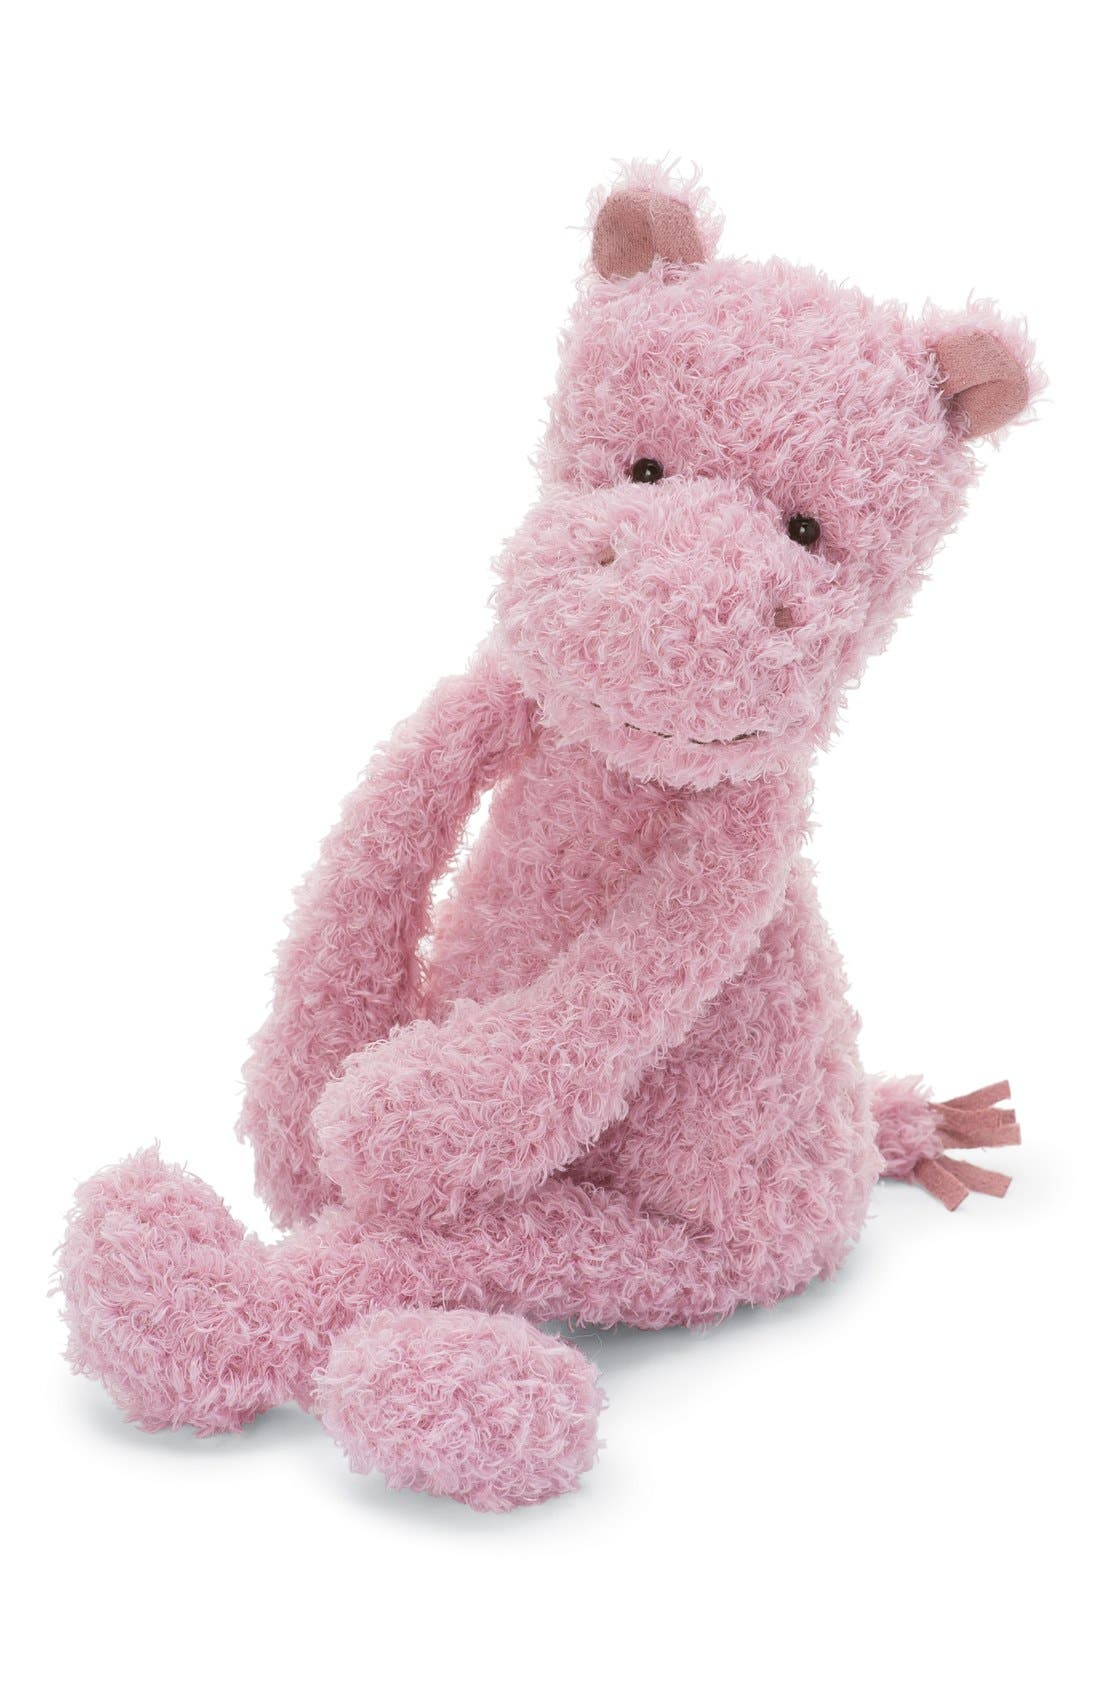 Alternate Image 1 Selected - Jellycat 'Wild Thing Hippo' Stuffed Animal